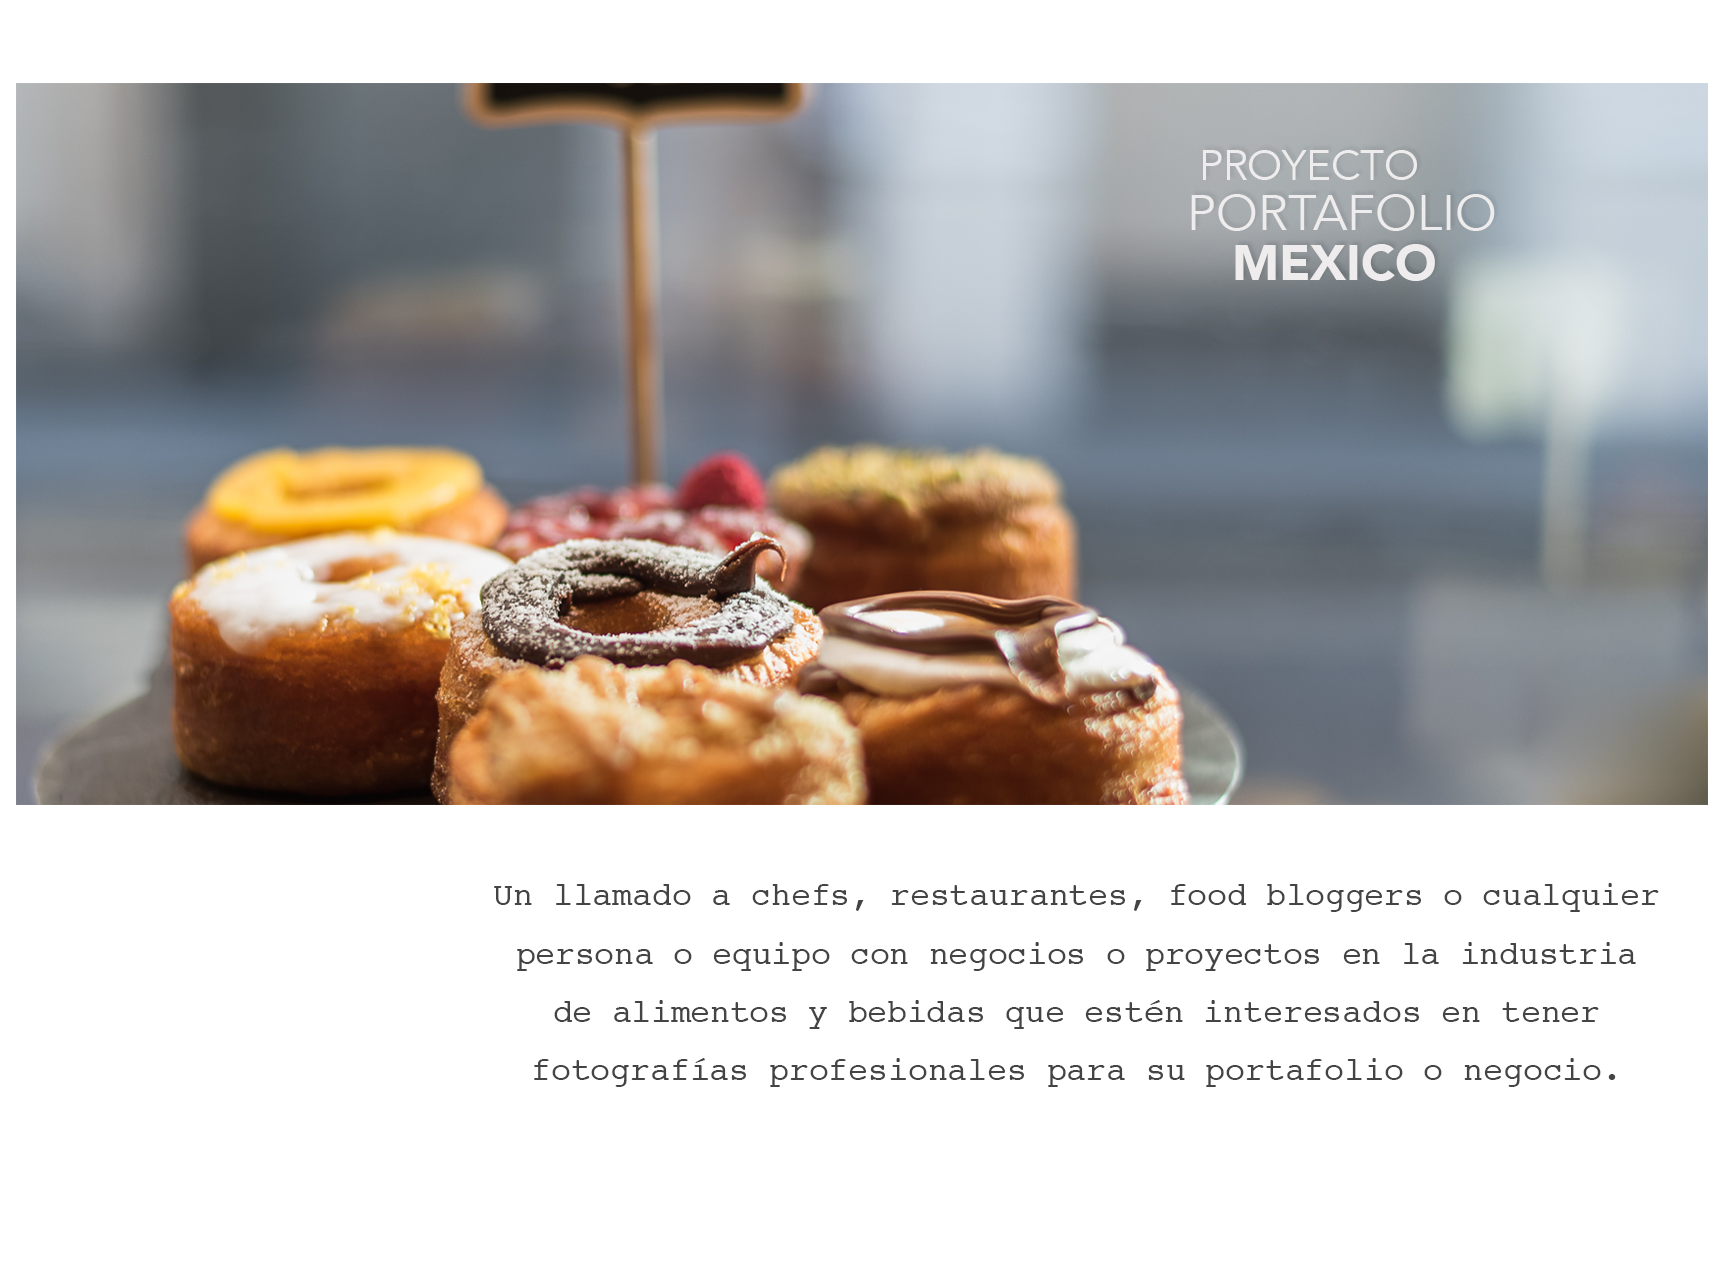 ProyectoPortafolioMexico_Banner.png